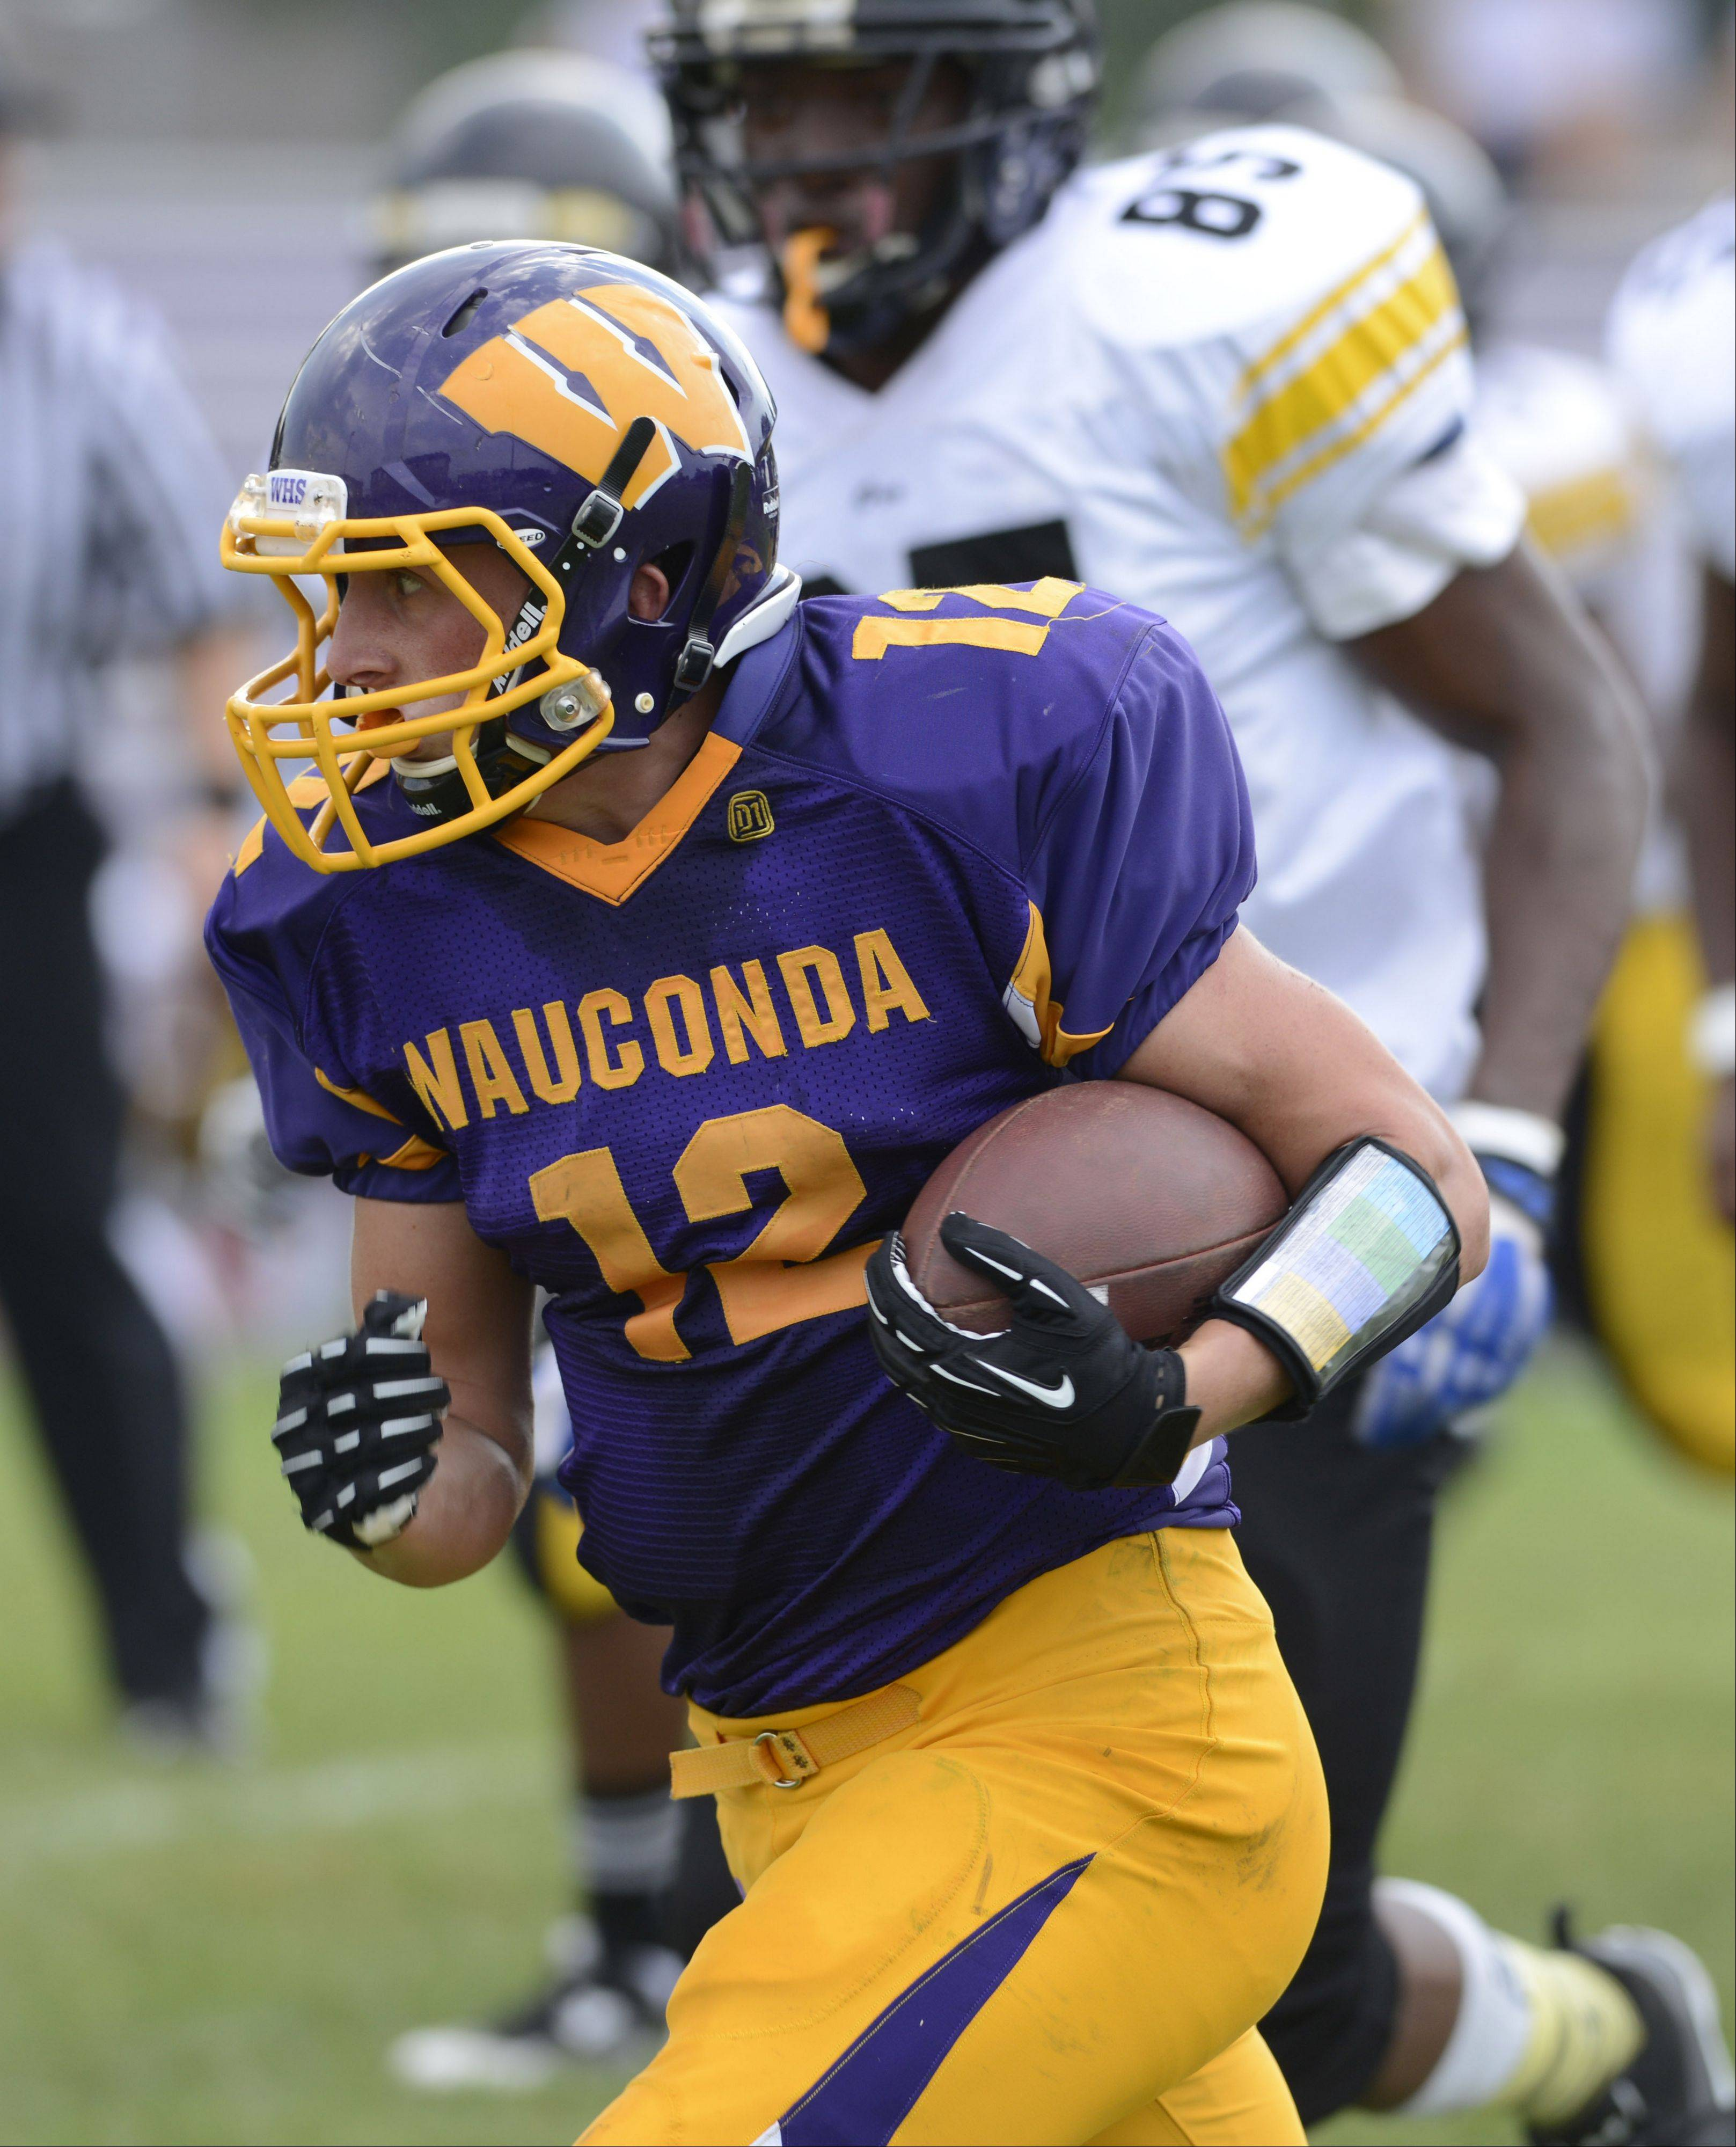 Wauconda's Alex Payne carries the ball during Saturday's game against Orr.